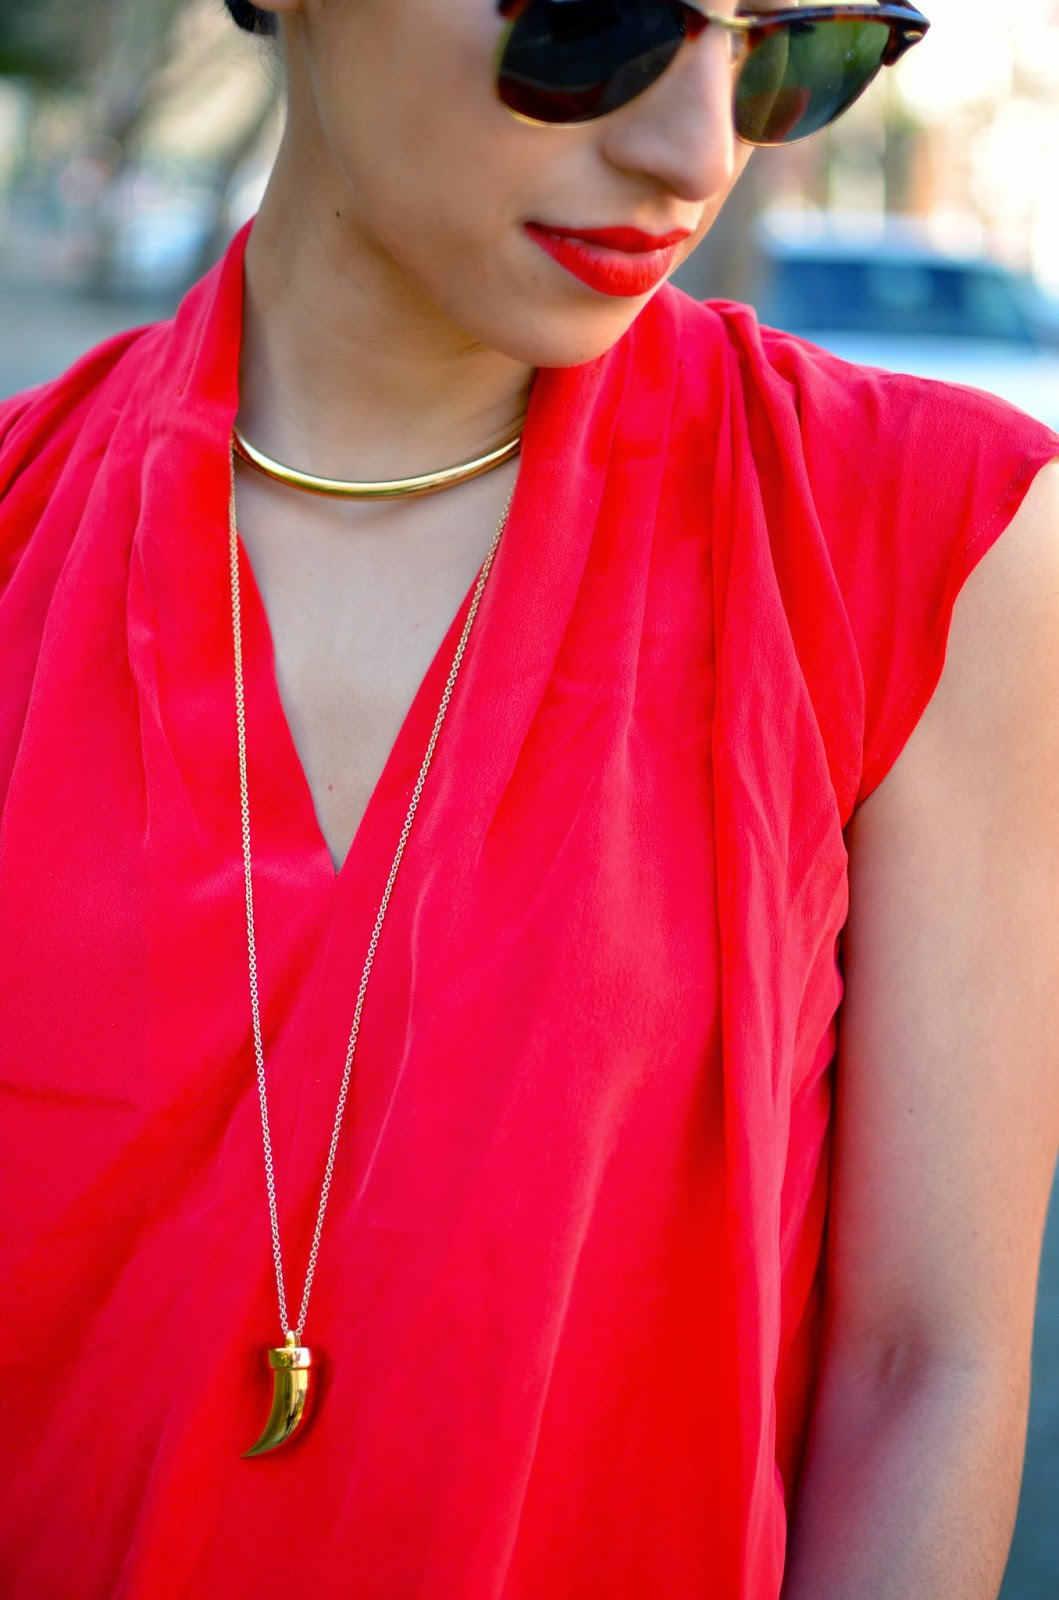 red silk top, scarlet silk top, Podolls silk top, The Podolls, Les Mechantes silk top, SF, San Francisco, OOTD, Ray Ban club masters, gold jewelry, The New BR